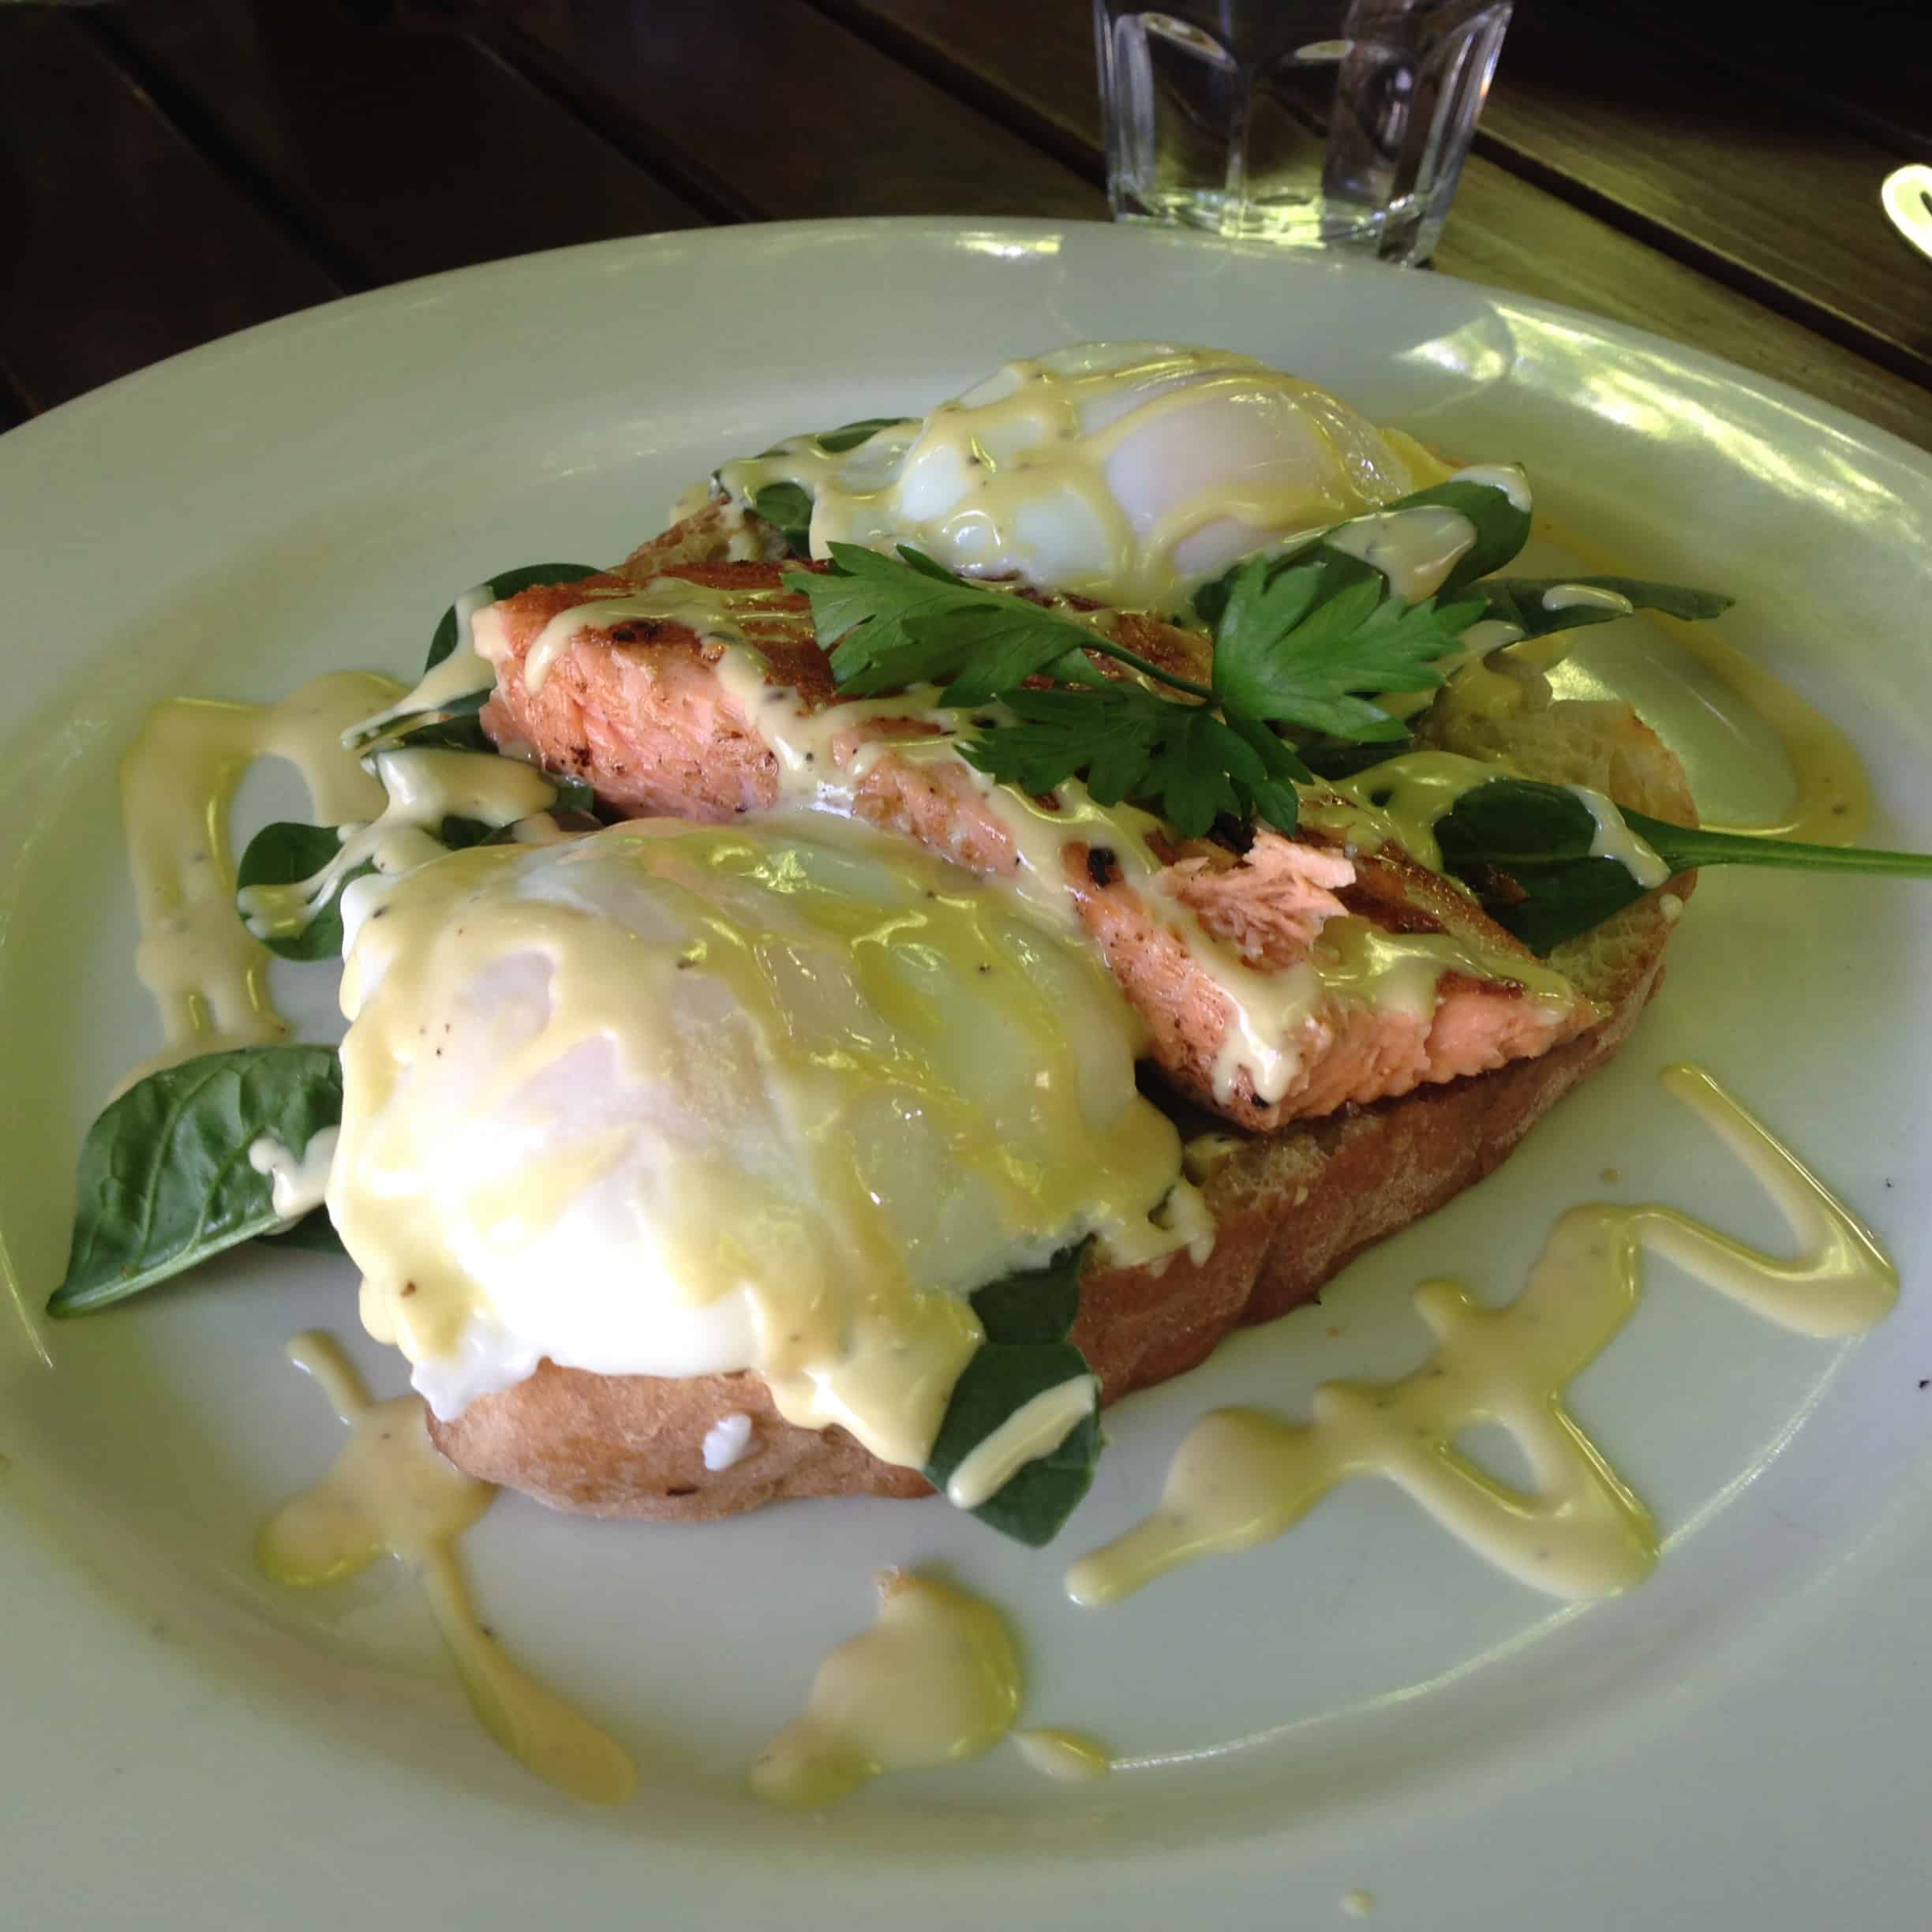 Eggs Benedict at The Village Cafe, Kerikeri.